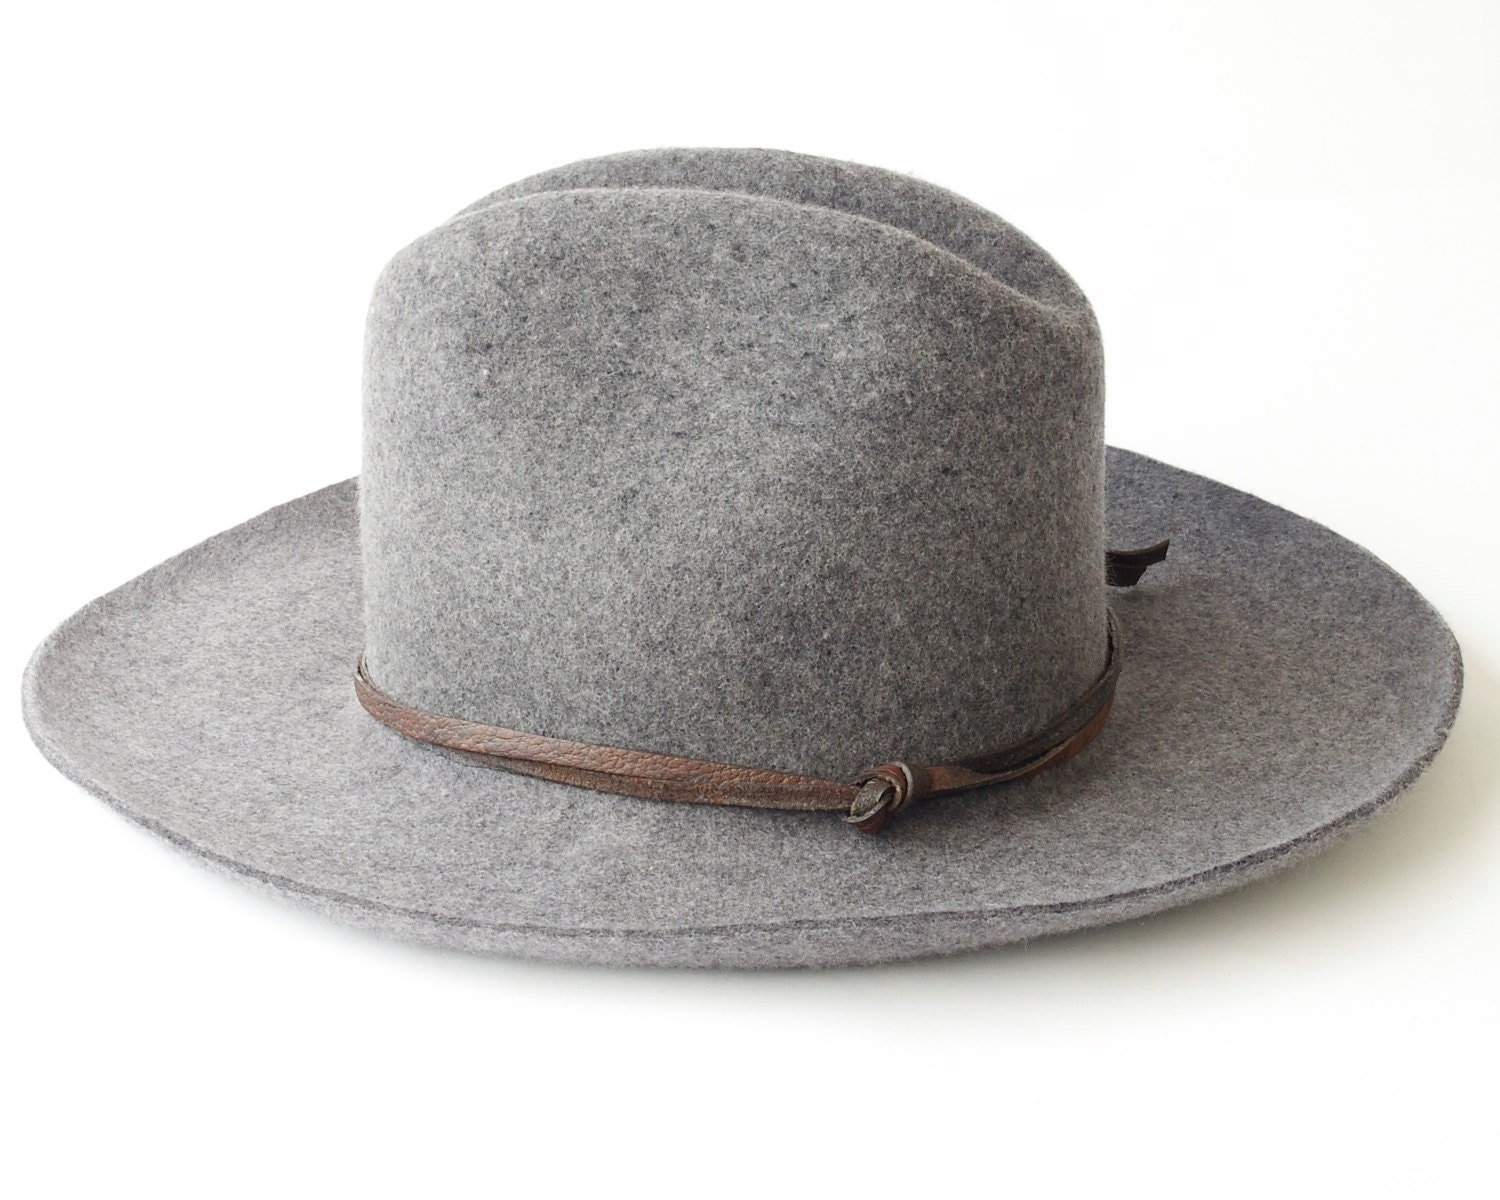 Vintage Style Mens Hats. Prior to the 's, a hat was an essential piece of any man's wardrobe, whether he be a street hustler or millionaire.